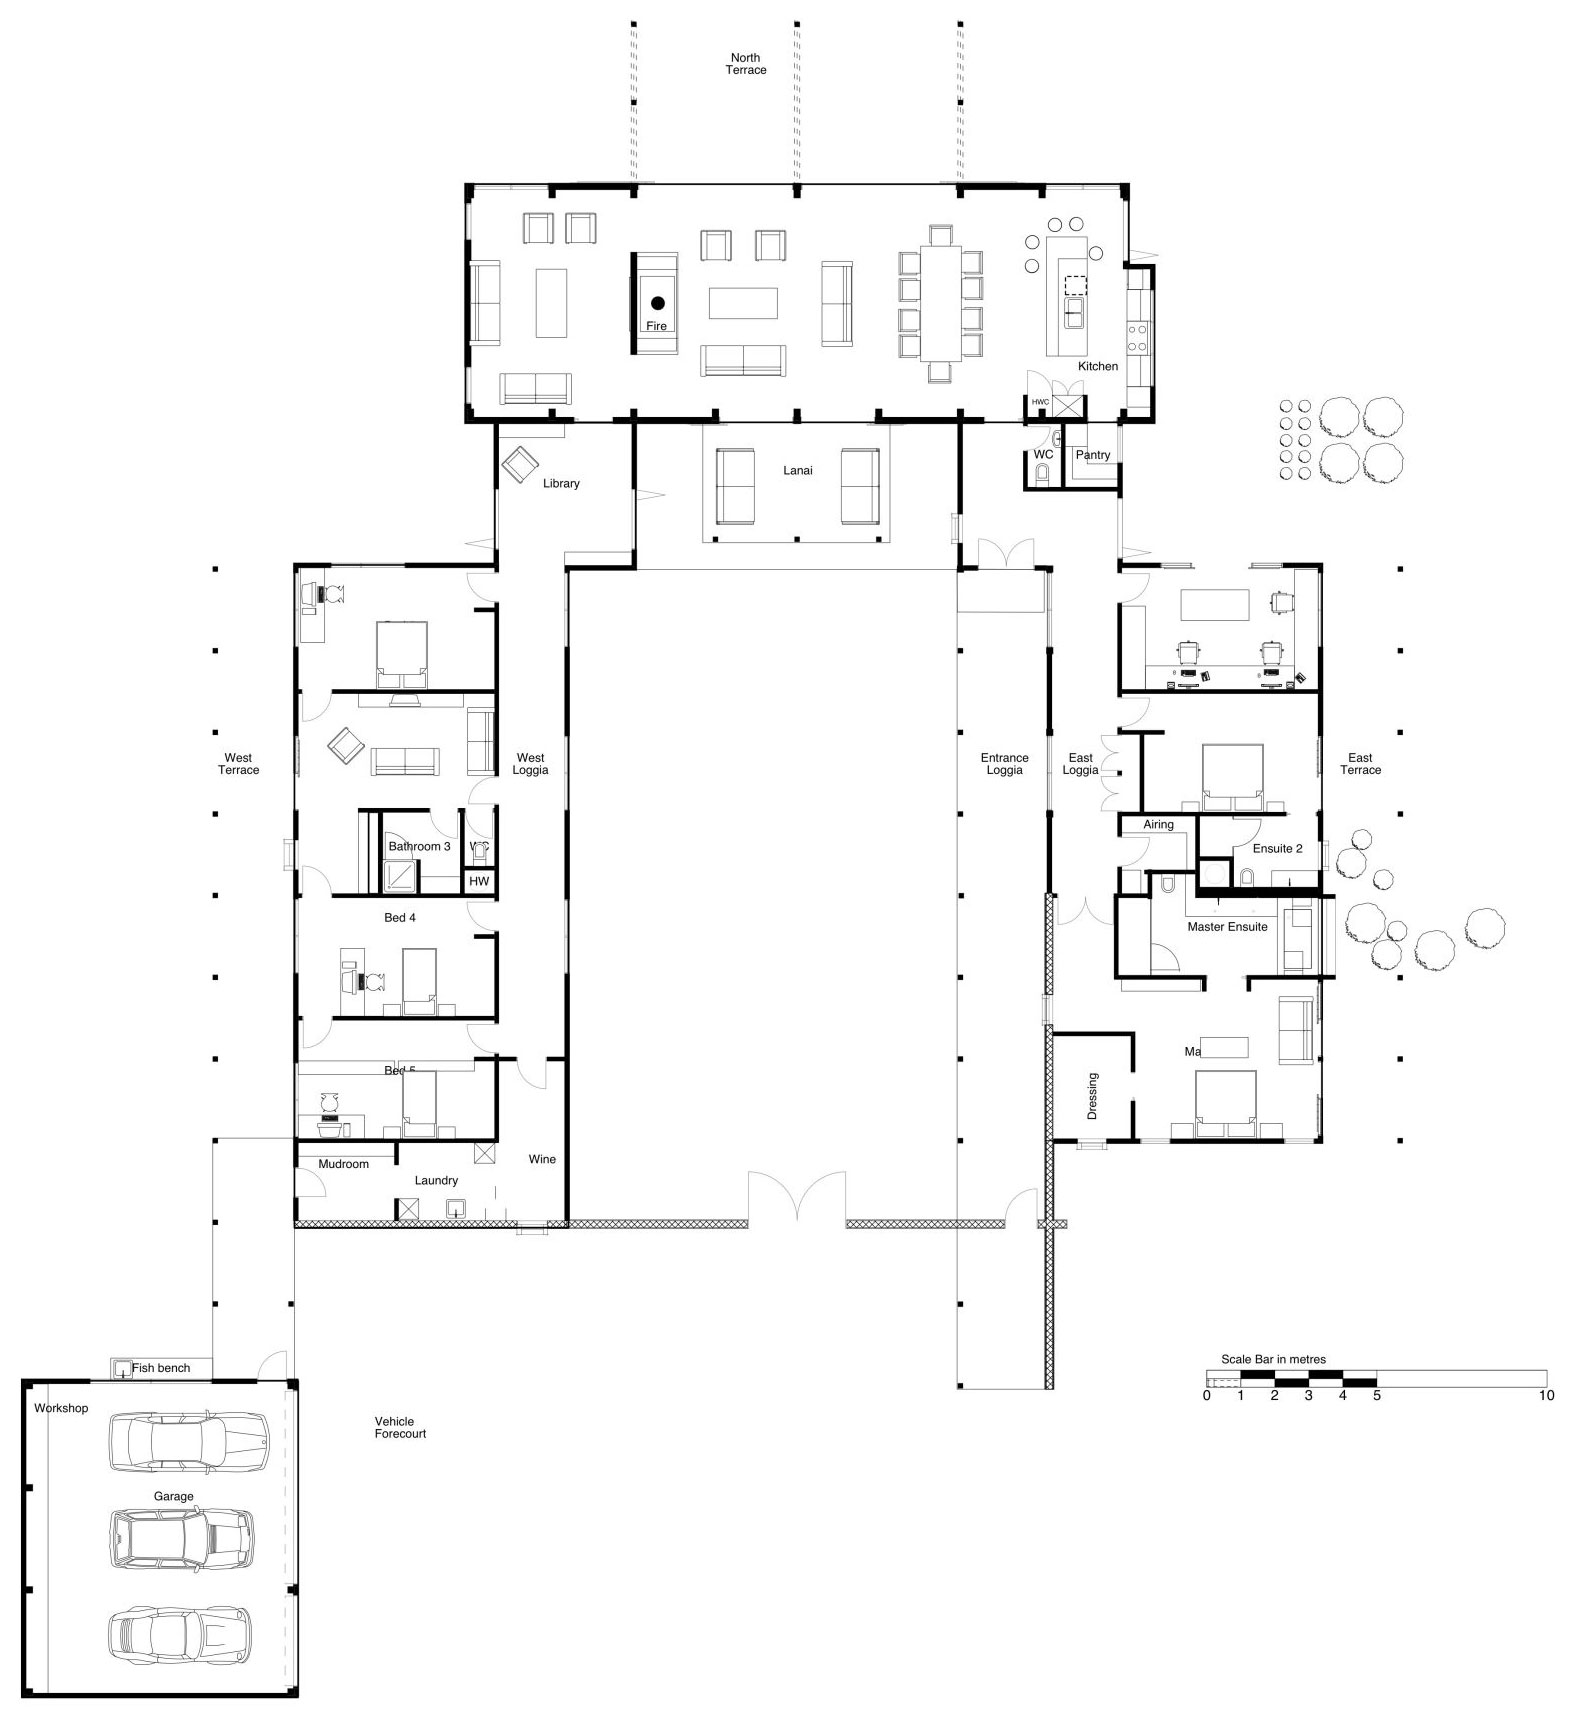 House plans and design modern house plans new zealand for Modern house designs nz